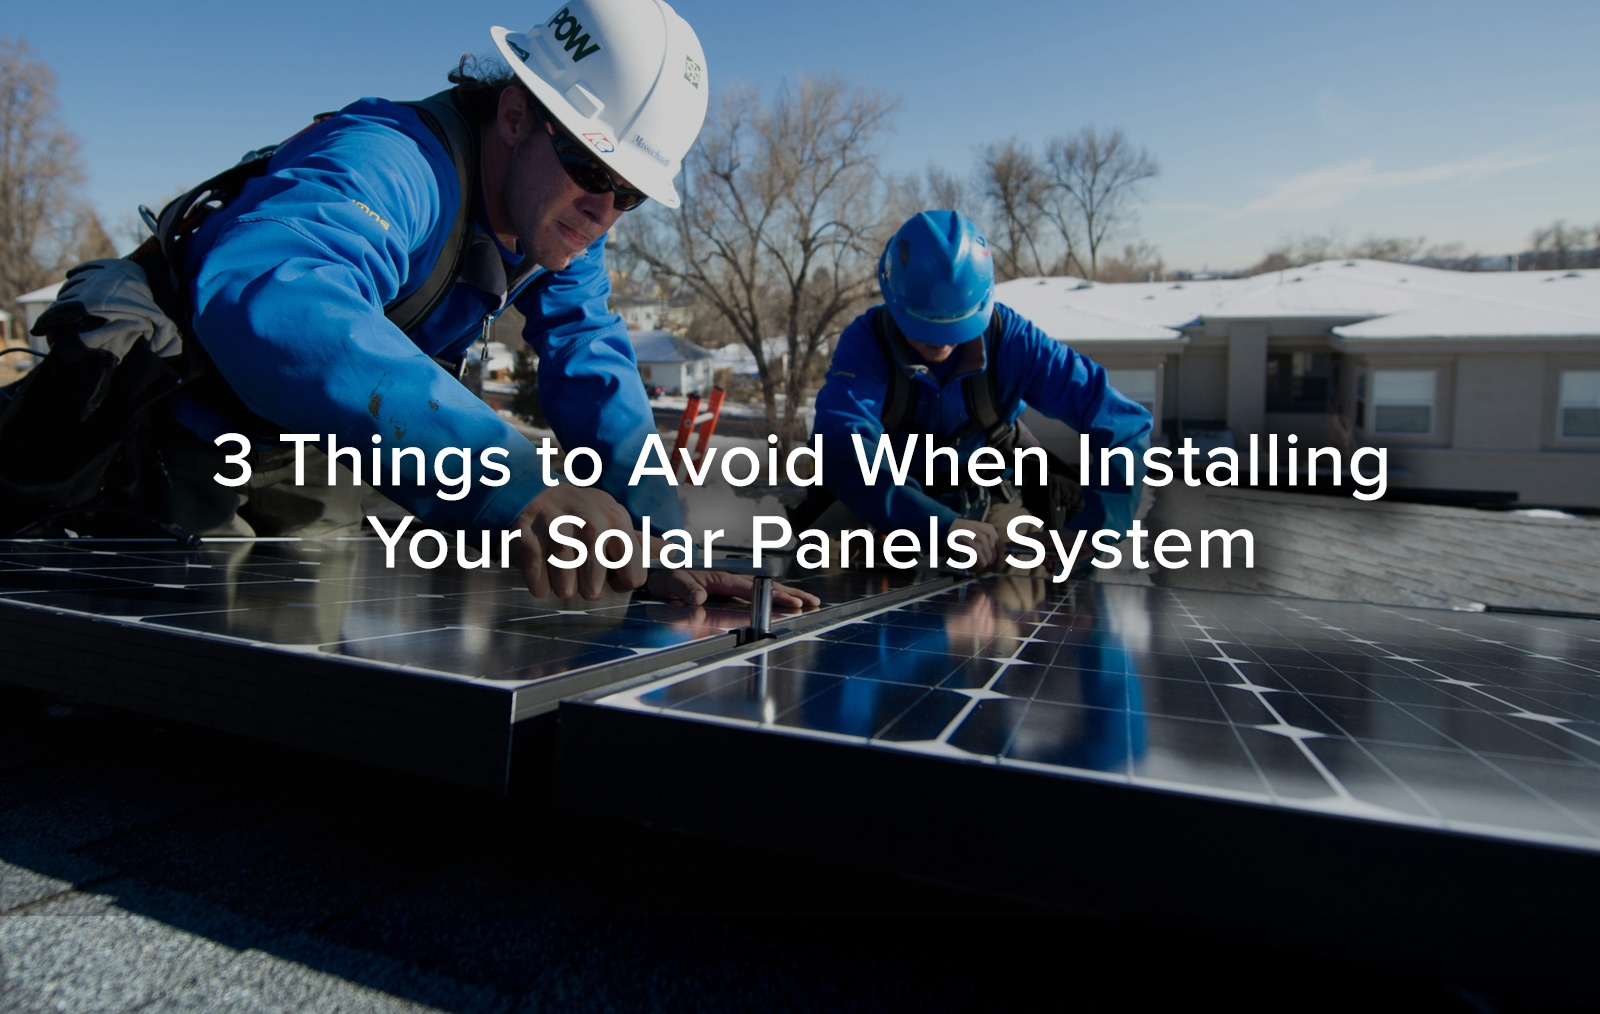 Three Things To Avoid When Installing Your Solar Panel System